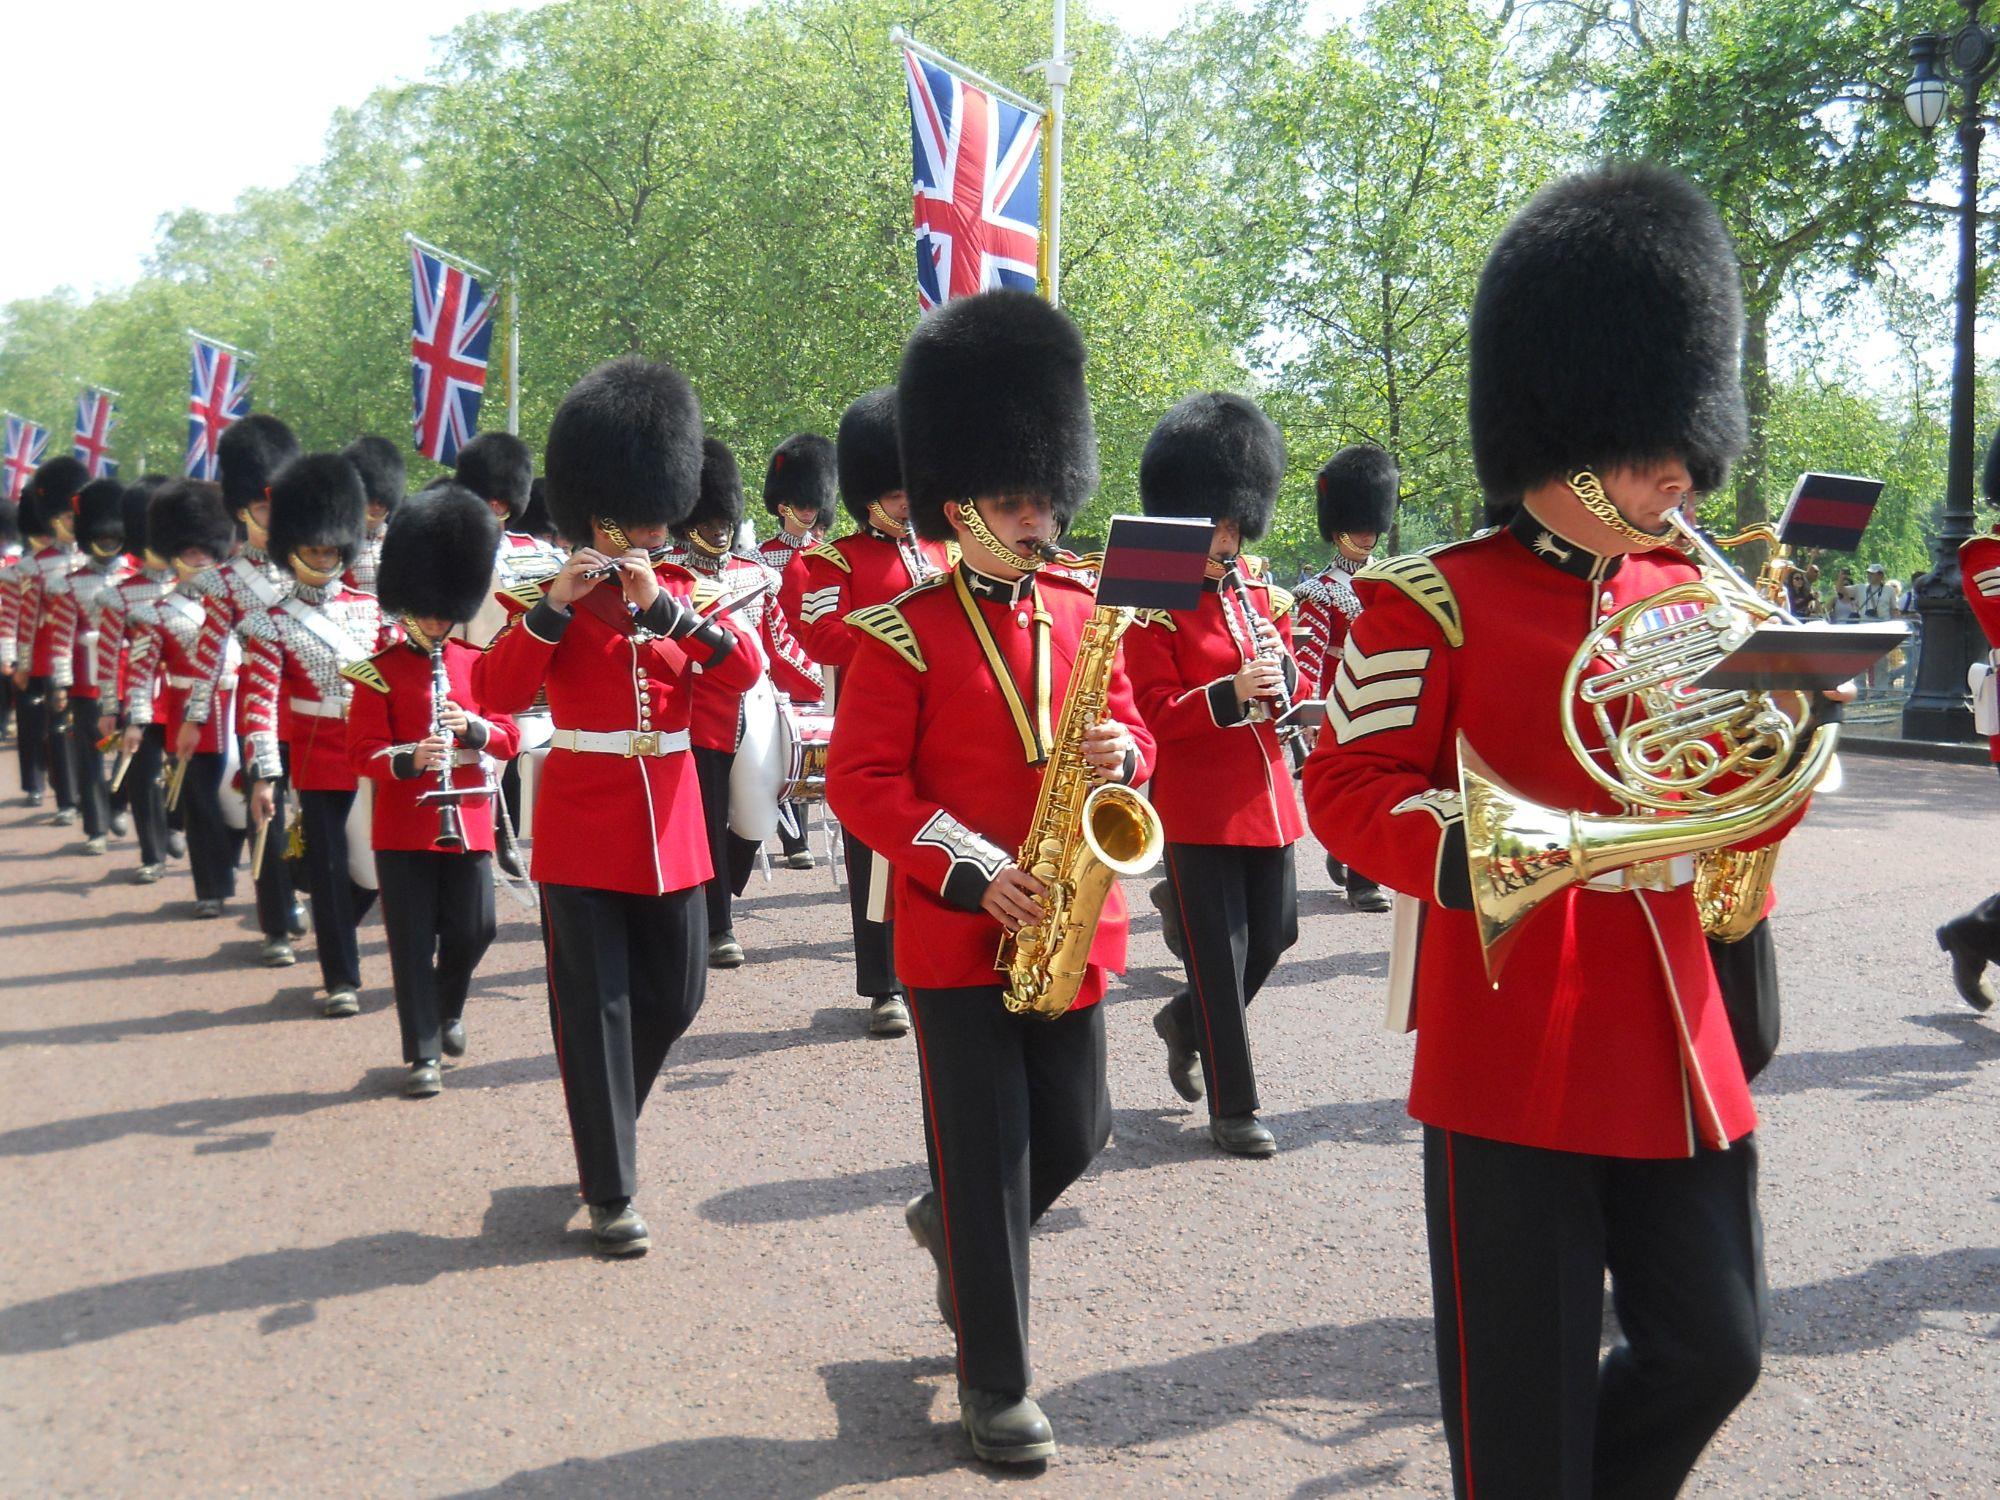 Photo of a military band marching  along The Mall. The soliders were scarlet jackets and black busbys. They are playing a selection of brass and woodwind instruments.